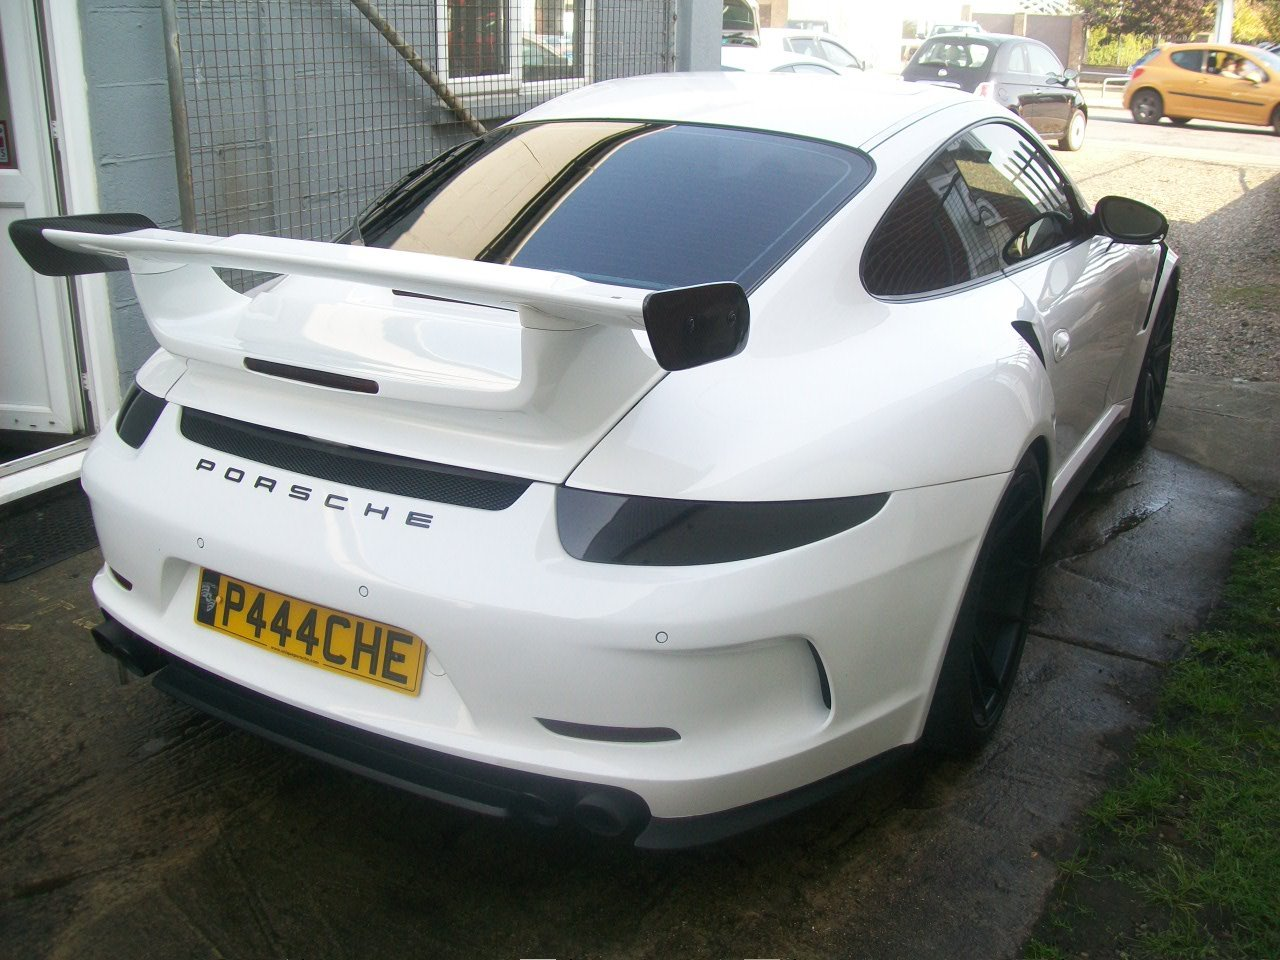 2001 Porsche 911 full gt3 conversion 3.9ltr hartech new For Sale (picture 6 of 6)